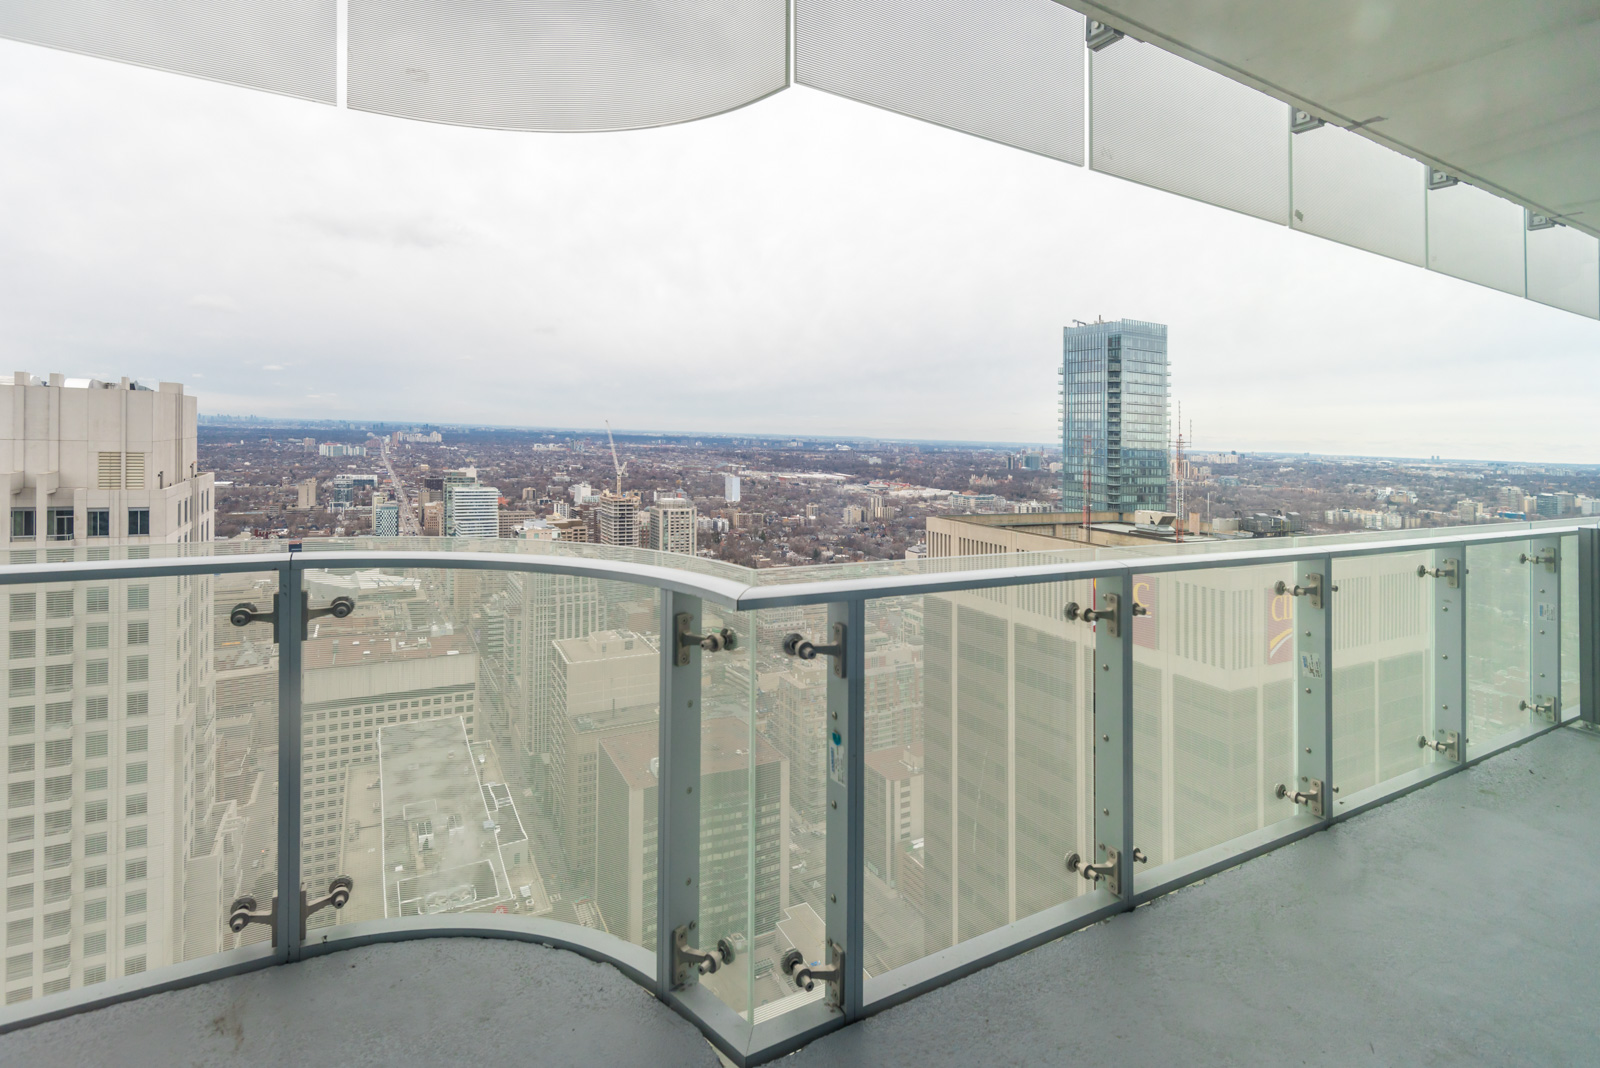 Photo of balcony showing Toronto in the distance.